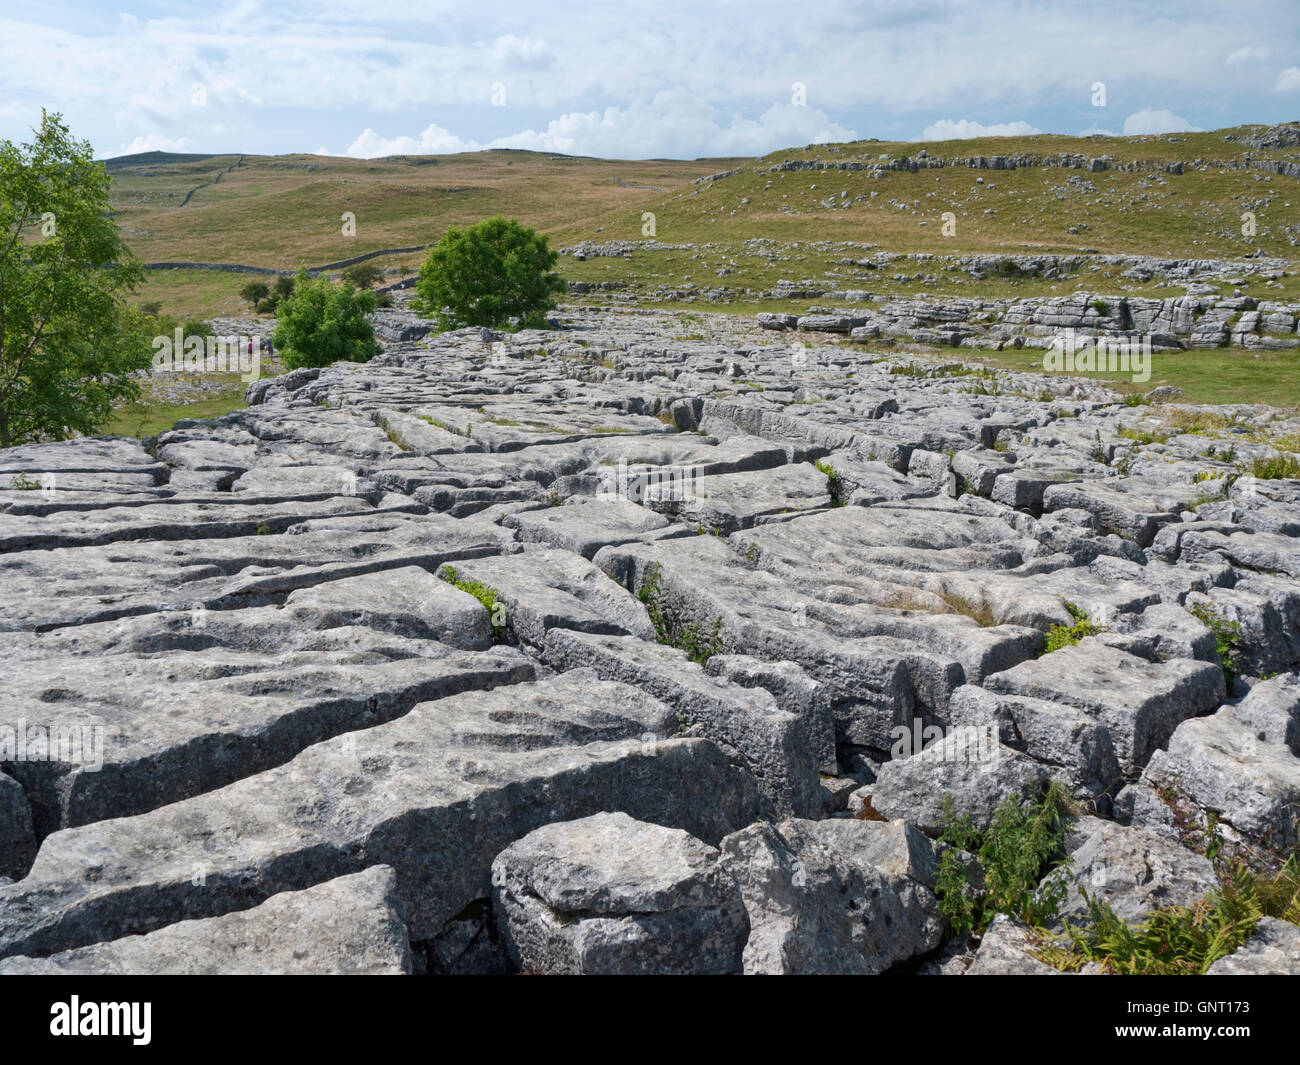 The clints and grykes of a limestone pavement above Malham Cove, outside the village of Malham, Yorkshire Dales - Stock Image